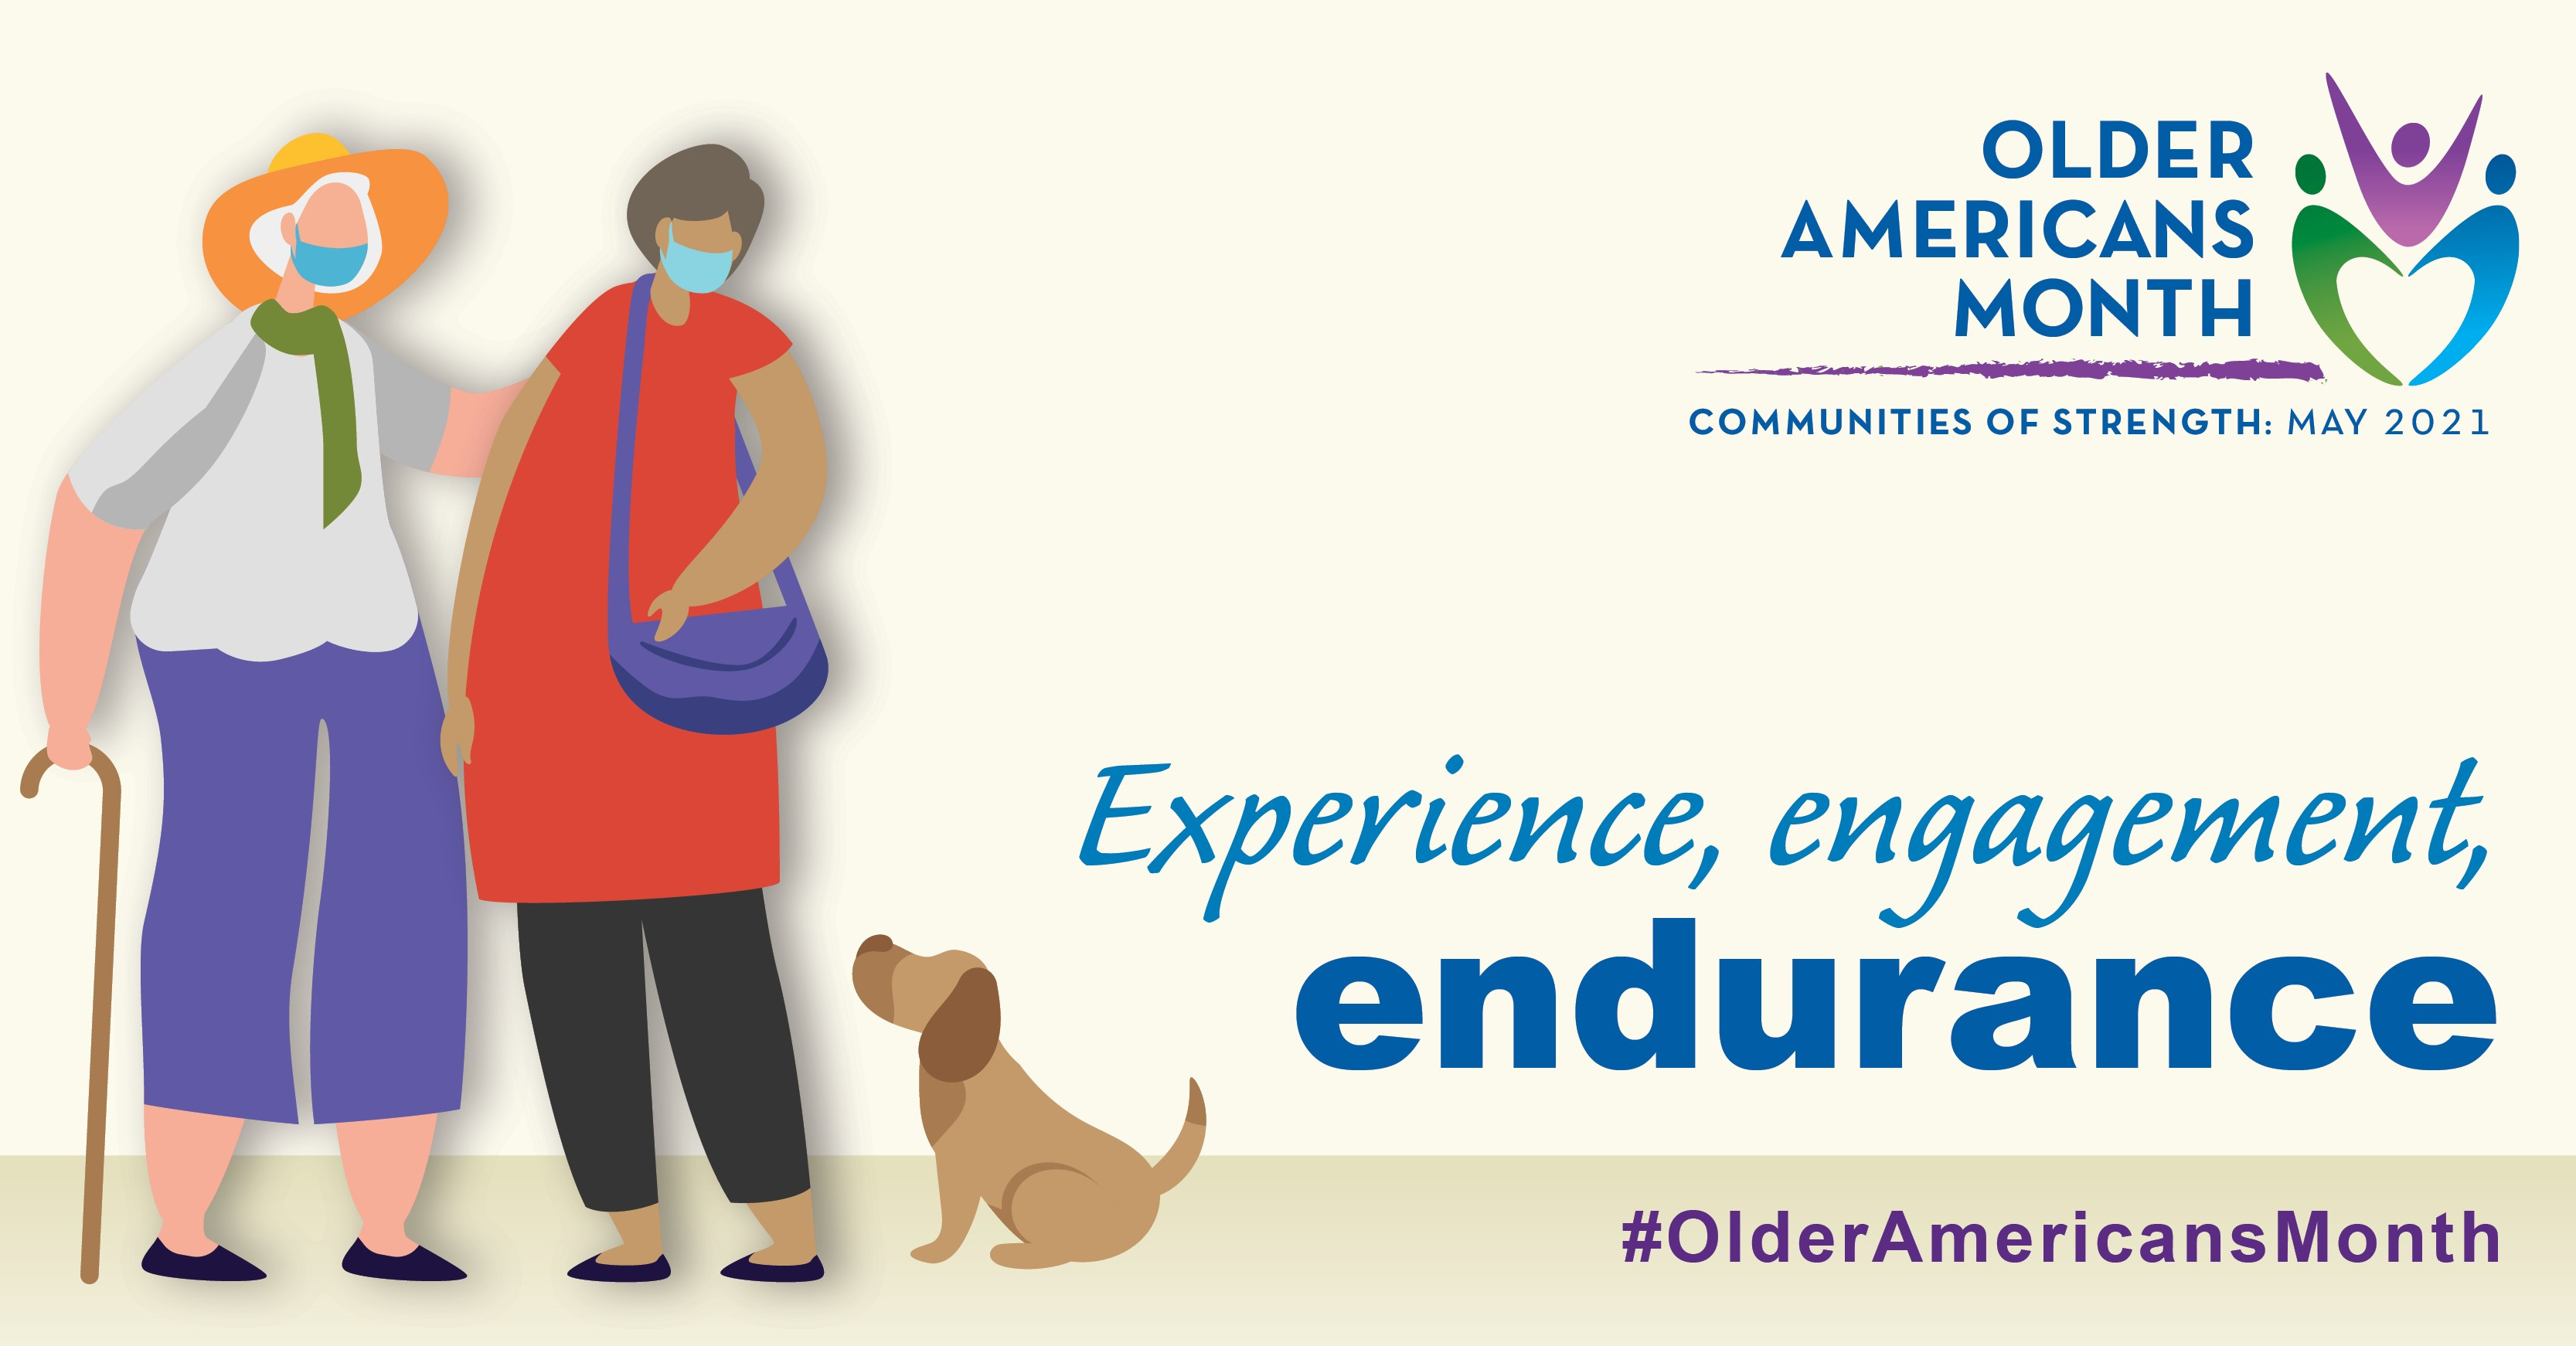 Social Media Graphic: Communities of Strength, Older Americans Month, May 2021. Experience, engagement, endurance. #OlderAmericansMonth